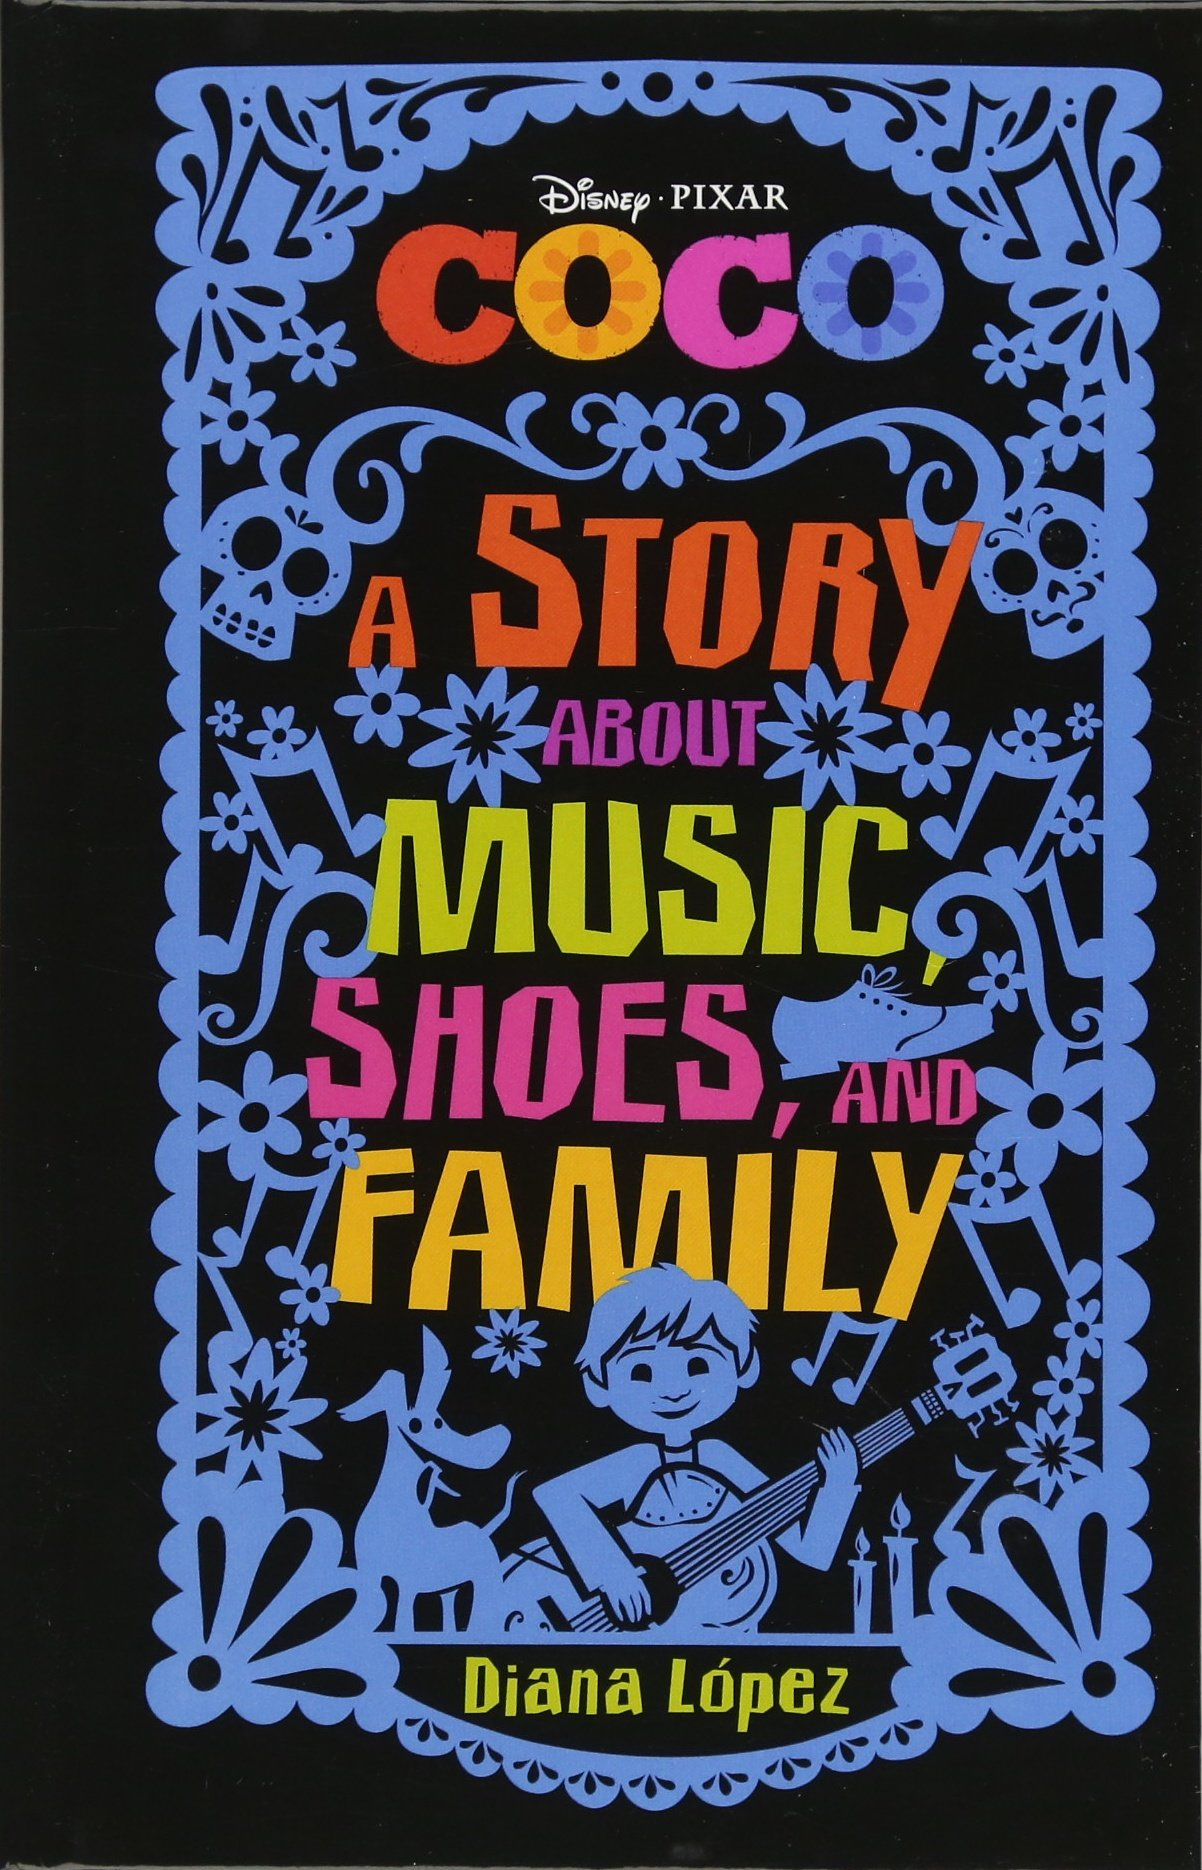 Coco: A Middle Grade Novel: A Story about Music Shoes and Family